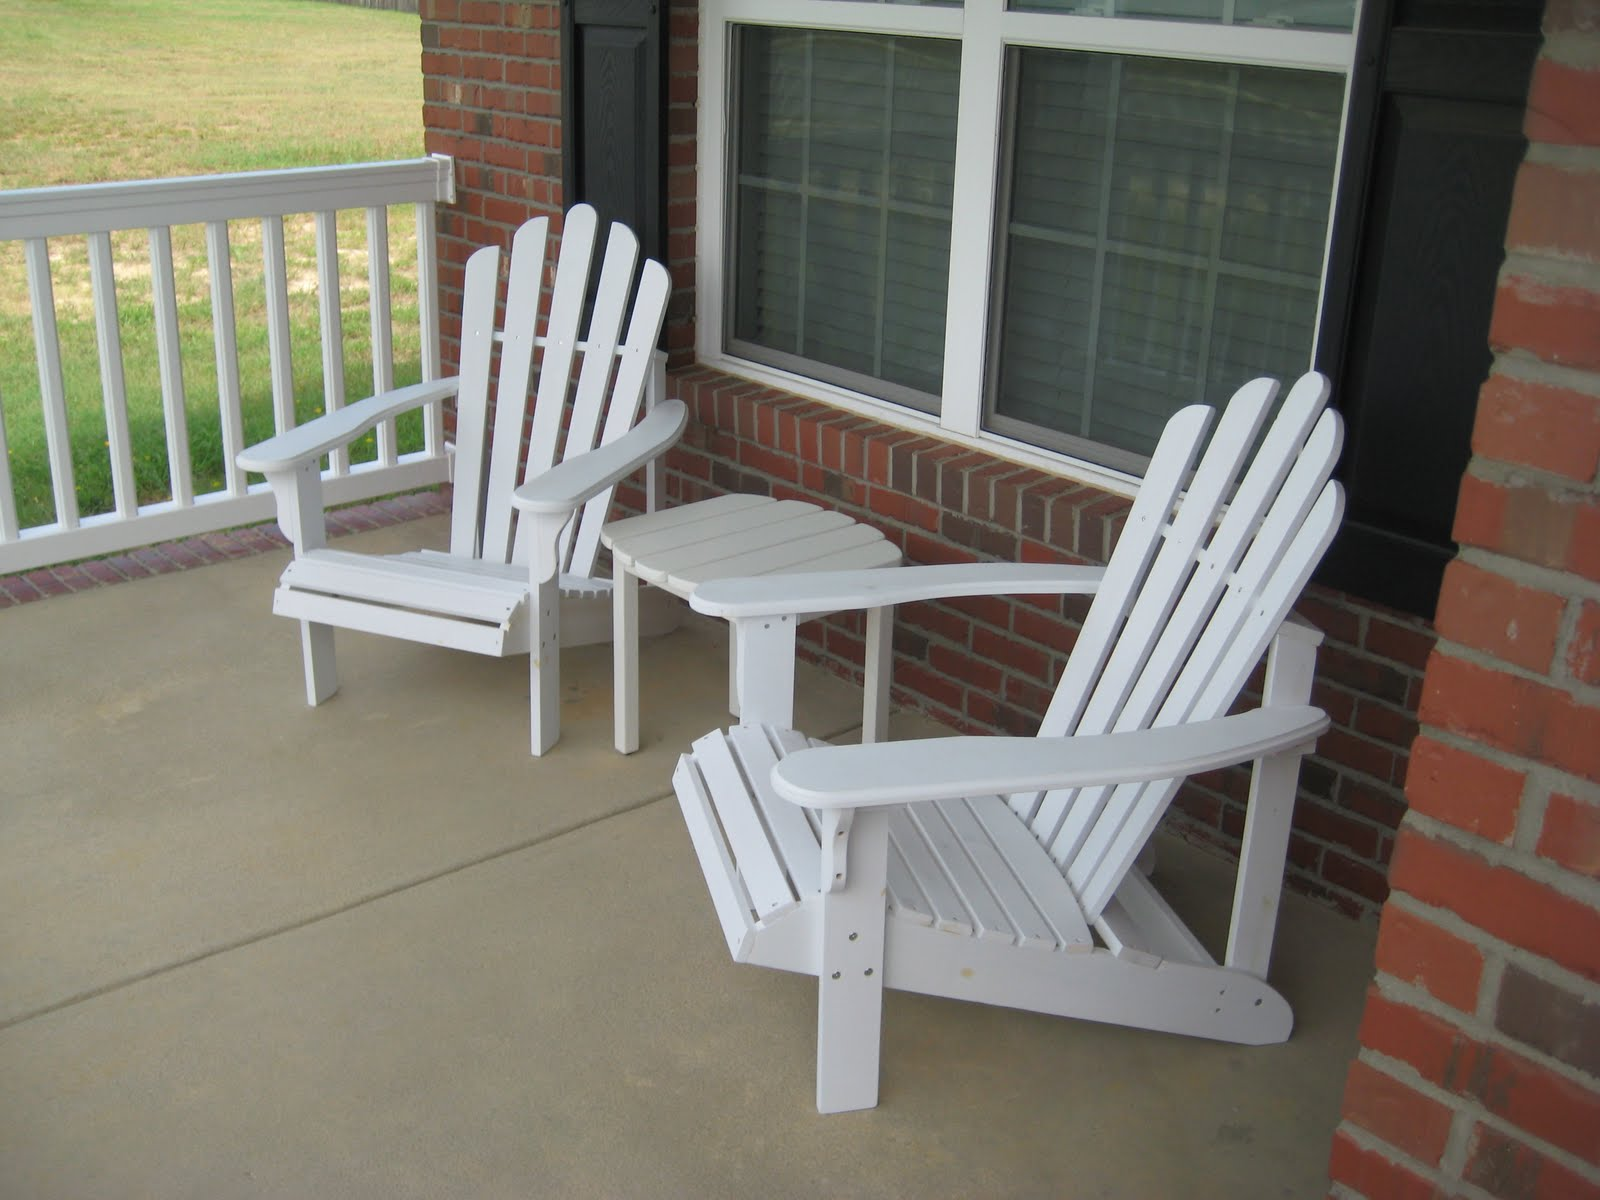 family of 3 new front porch furniture